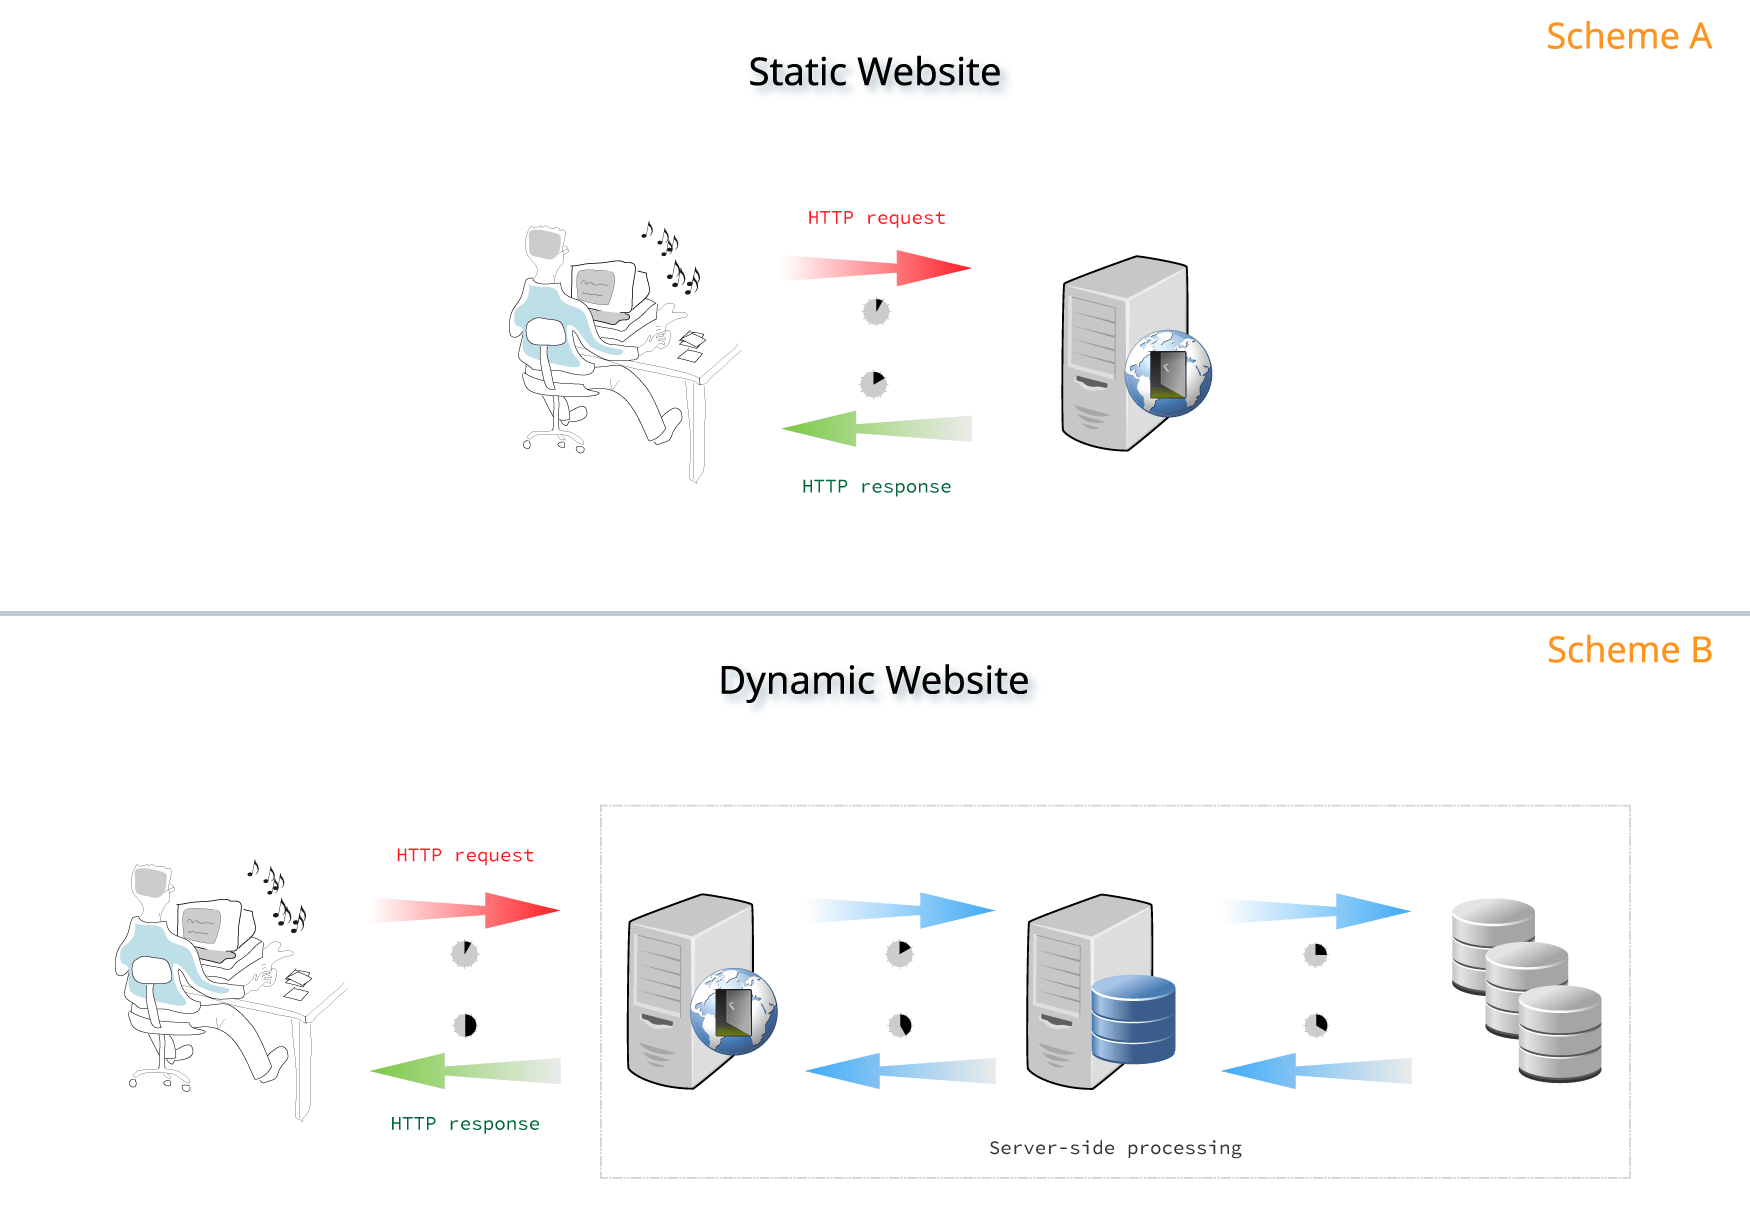 Static vs Dynamic server processing